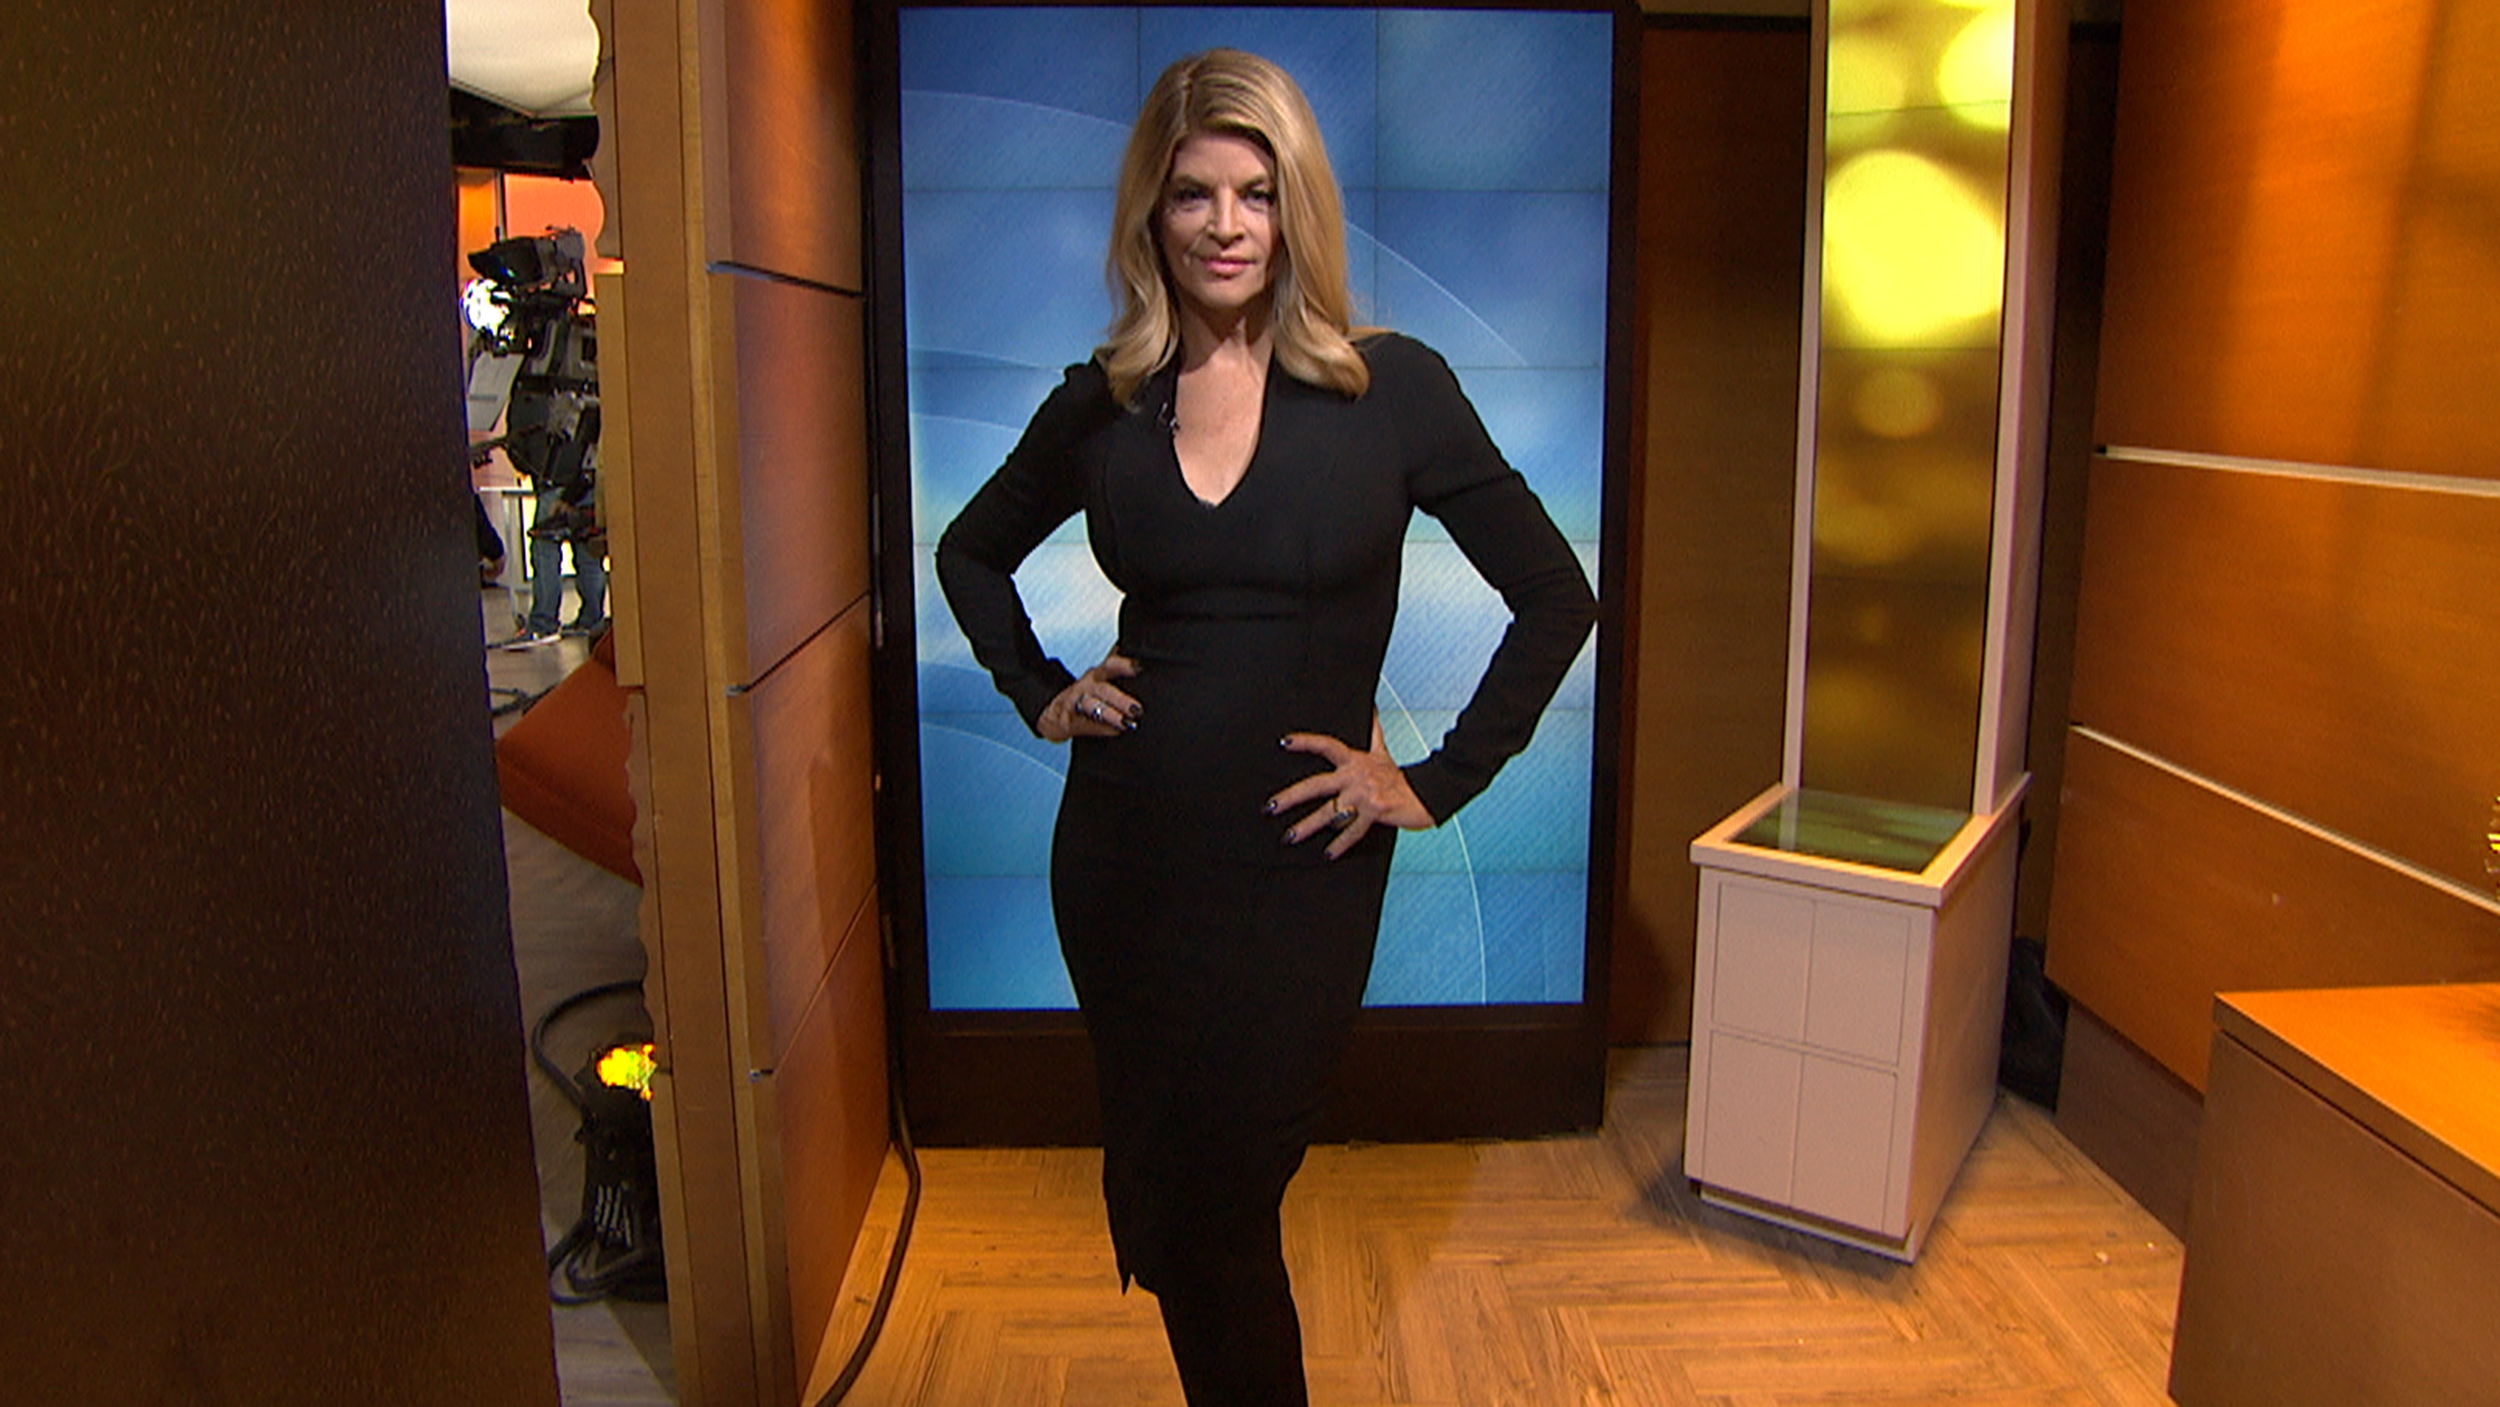 kirstie alley 1997kirstie alley cheers, kirstie alley weight loss, kirstie alley height and weight, kirstie alley 1997, kirstie alley fet, kirstie alley wendy williams, kirstie alley fergie look alike, kirstie alley gif, kirstie alley 2016, kirstie alley instagram, kirstie alley twitter, kirstie alley facebook, kirstie alley model, kirstie alley prince, kirstie alley 1987, kirstie alley listal